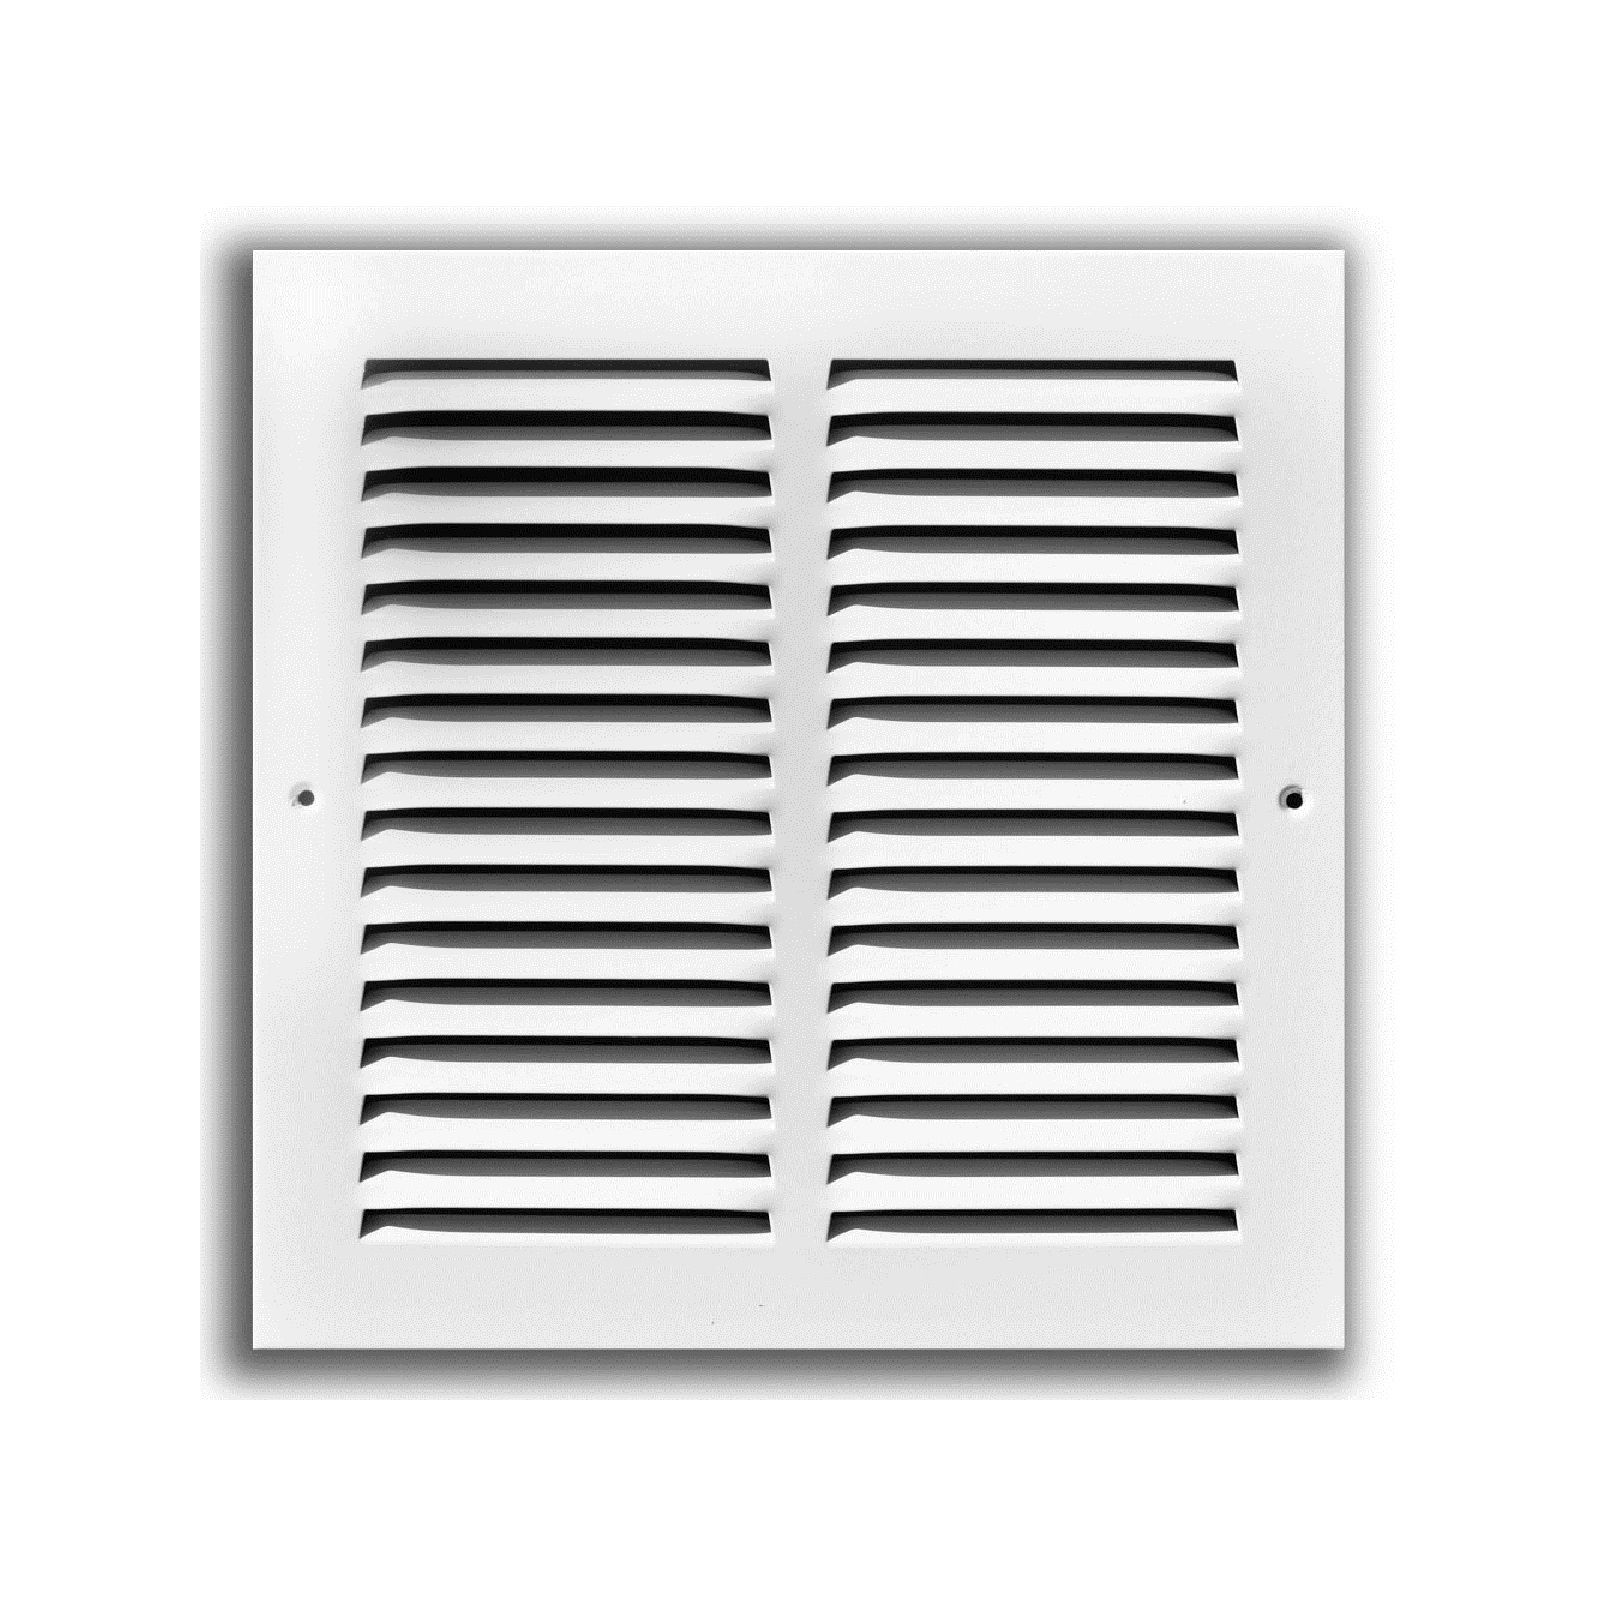 "TRUaire 170 18X12 - Steel Return Air Grille - 1/2"" Spaced Fin, White, 18"" X 12"""